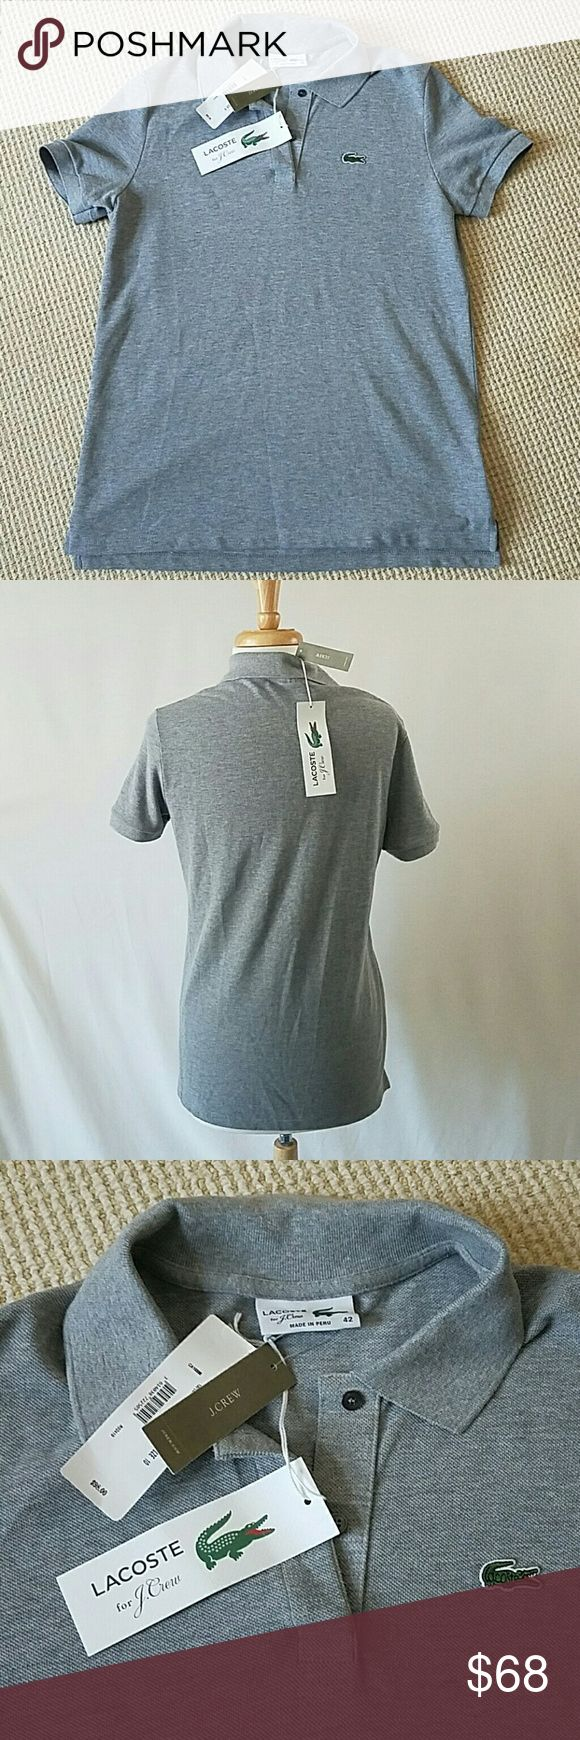 Lacoste for J. Crew gray polo shirt size 42/10 NWT Lacoste for J. Crew classic grey polo shirt size 42 FR US 10.  Retailing now for $98! New with tags. Too big for me!  (I normally wear a lacoste 38, not sure what I was thinking! Will also fit an 8 I think if you like a loose fit. J. Crew Tops